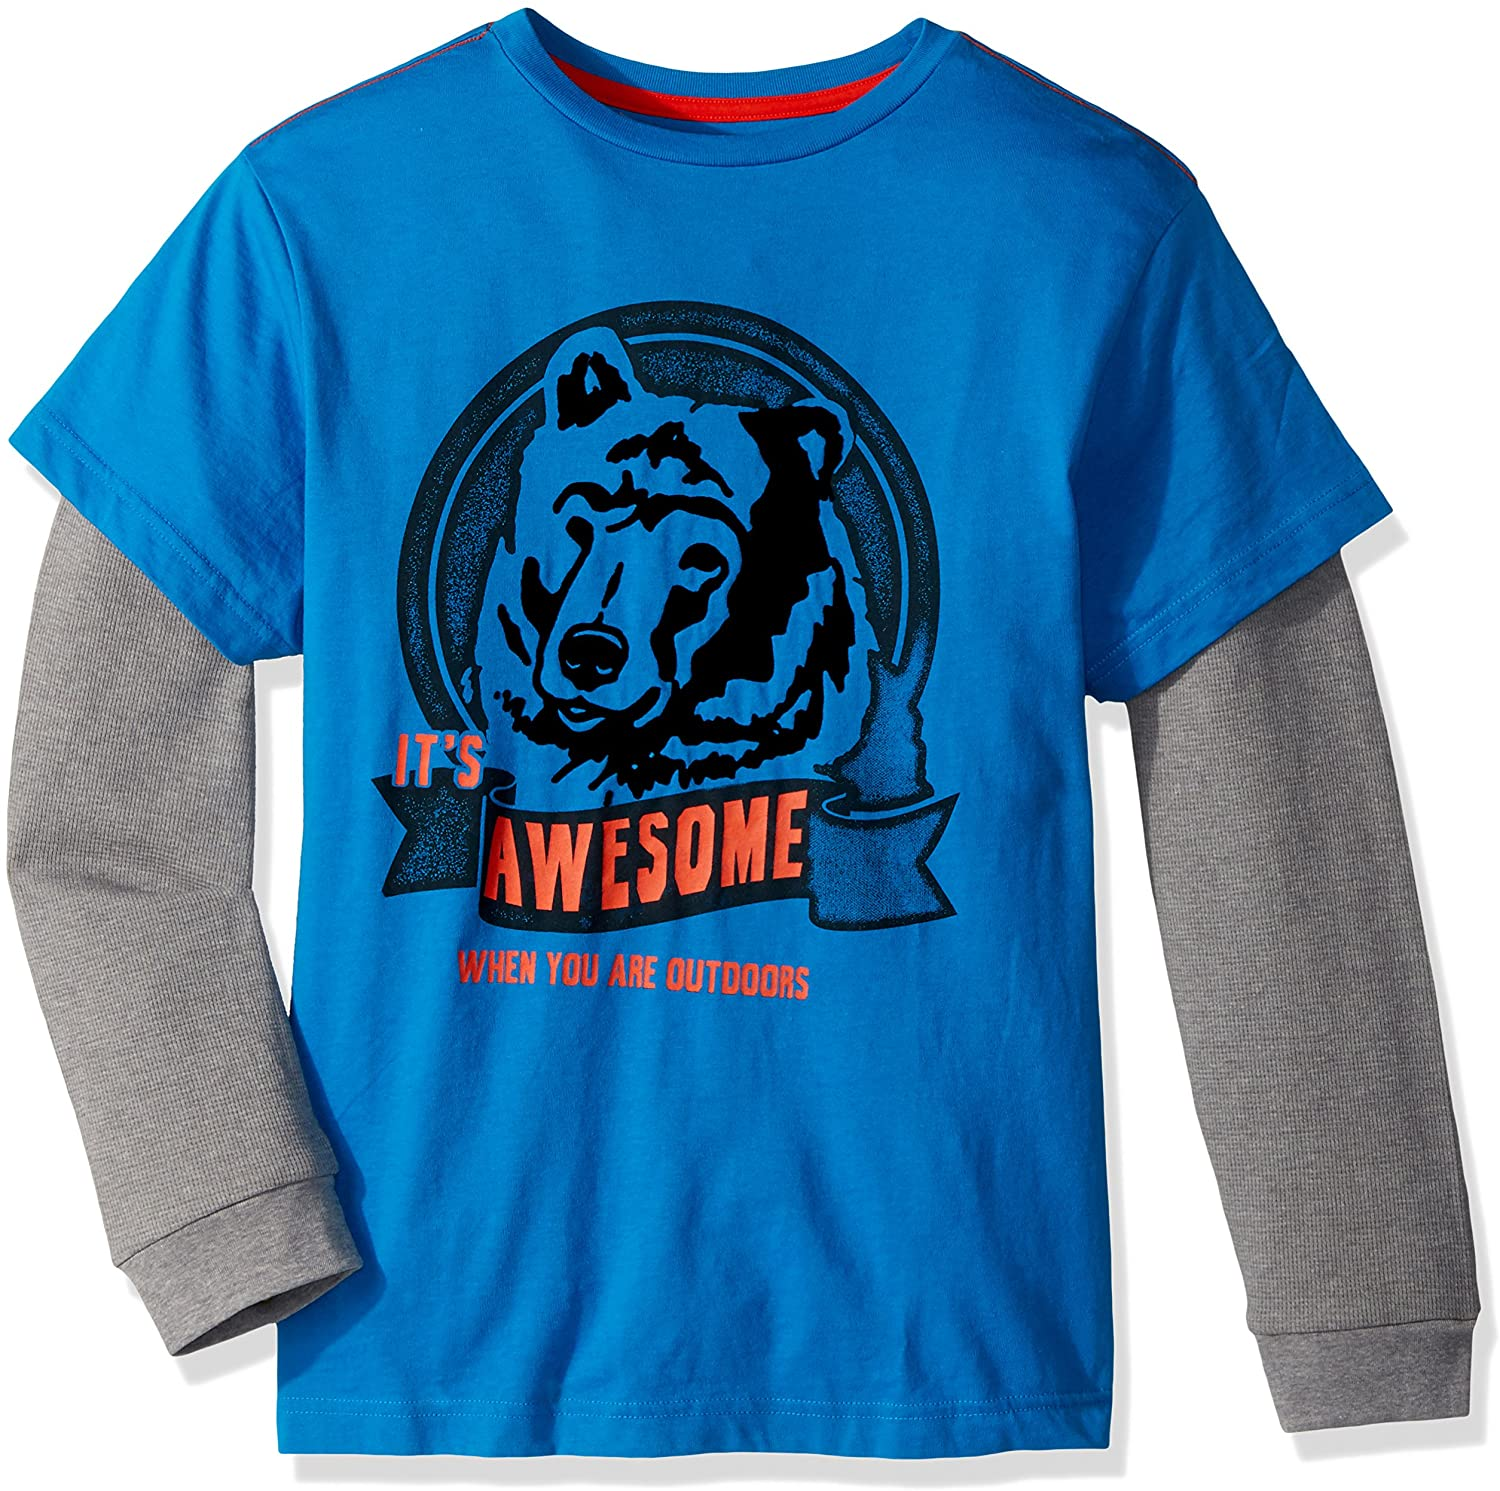 Crazy 8 Boys' Little Long Sleeve Fashion 2-in-1 Graphic Tee